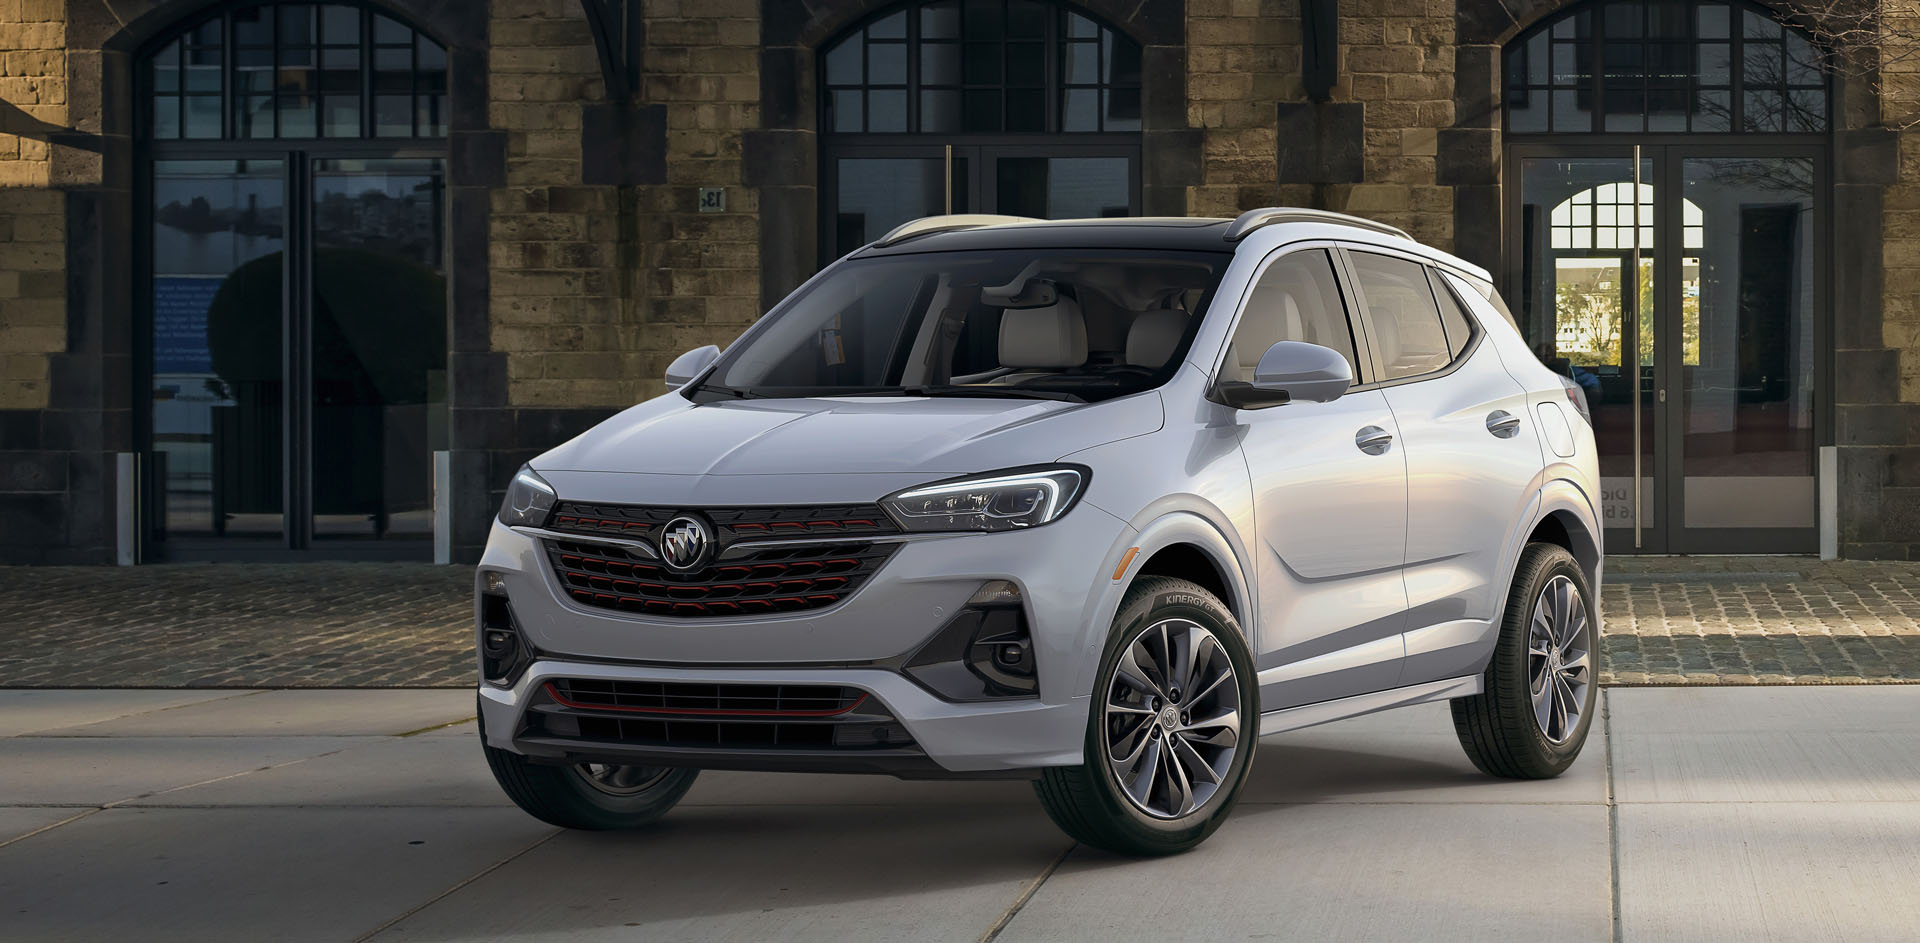 Buick Reveals U.s. Specs For The 2020 Encore Gx New 2022 Buick Encore Wheelbase, 0-60, Picture